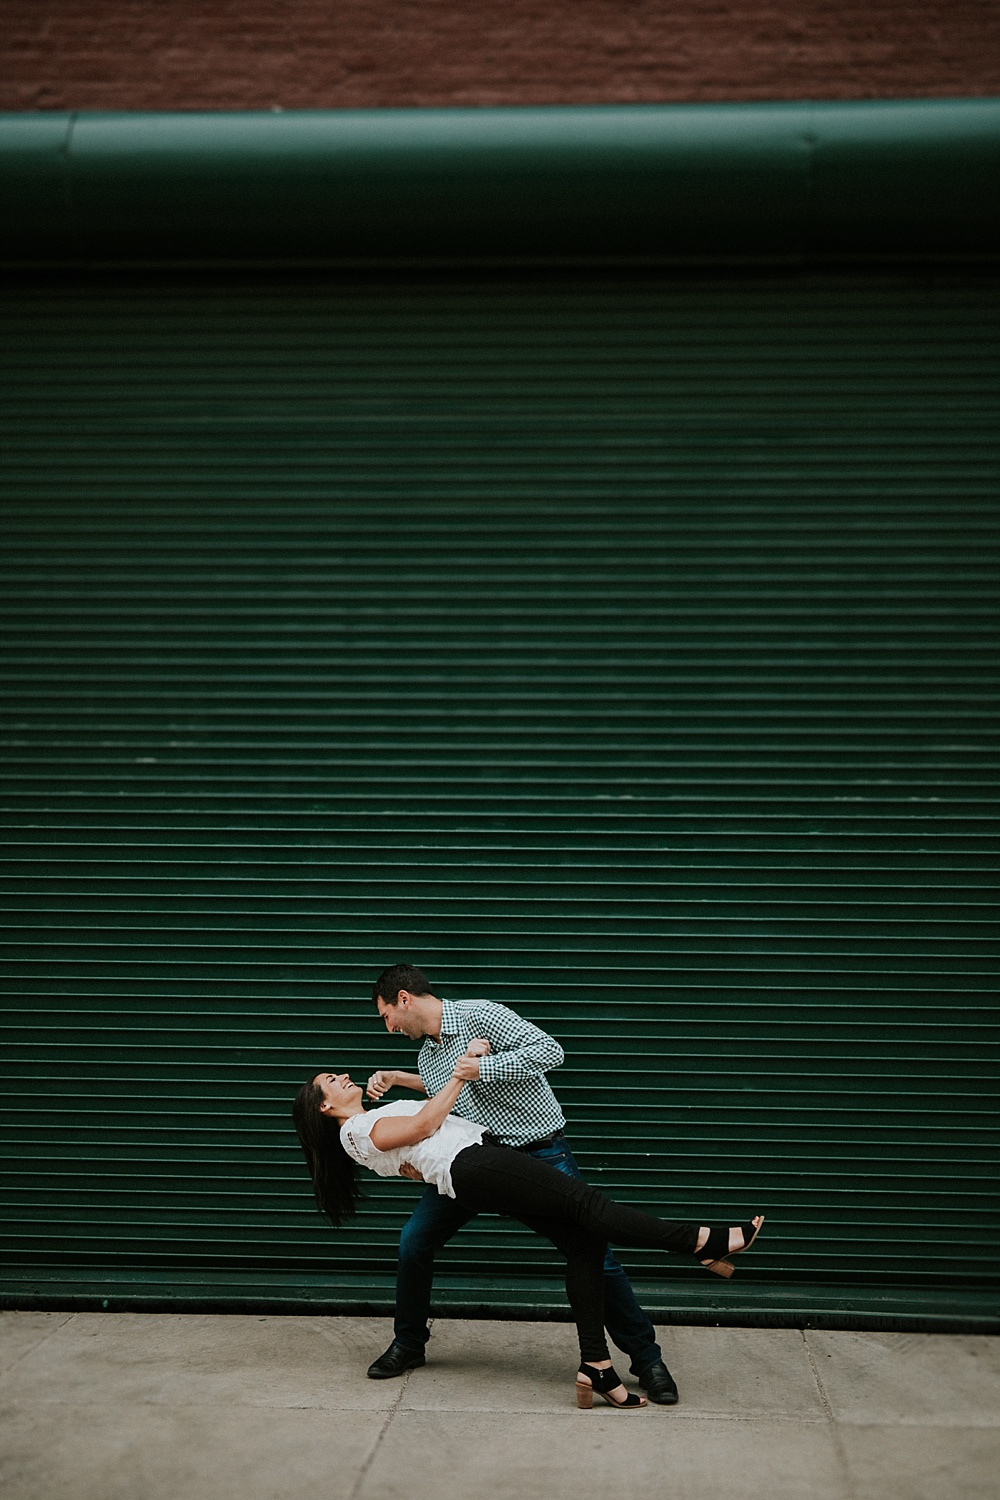 scott-alyse_West-Loop-Chicago_Engagement-Session_Liller-Photo_0004.jpg